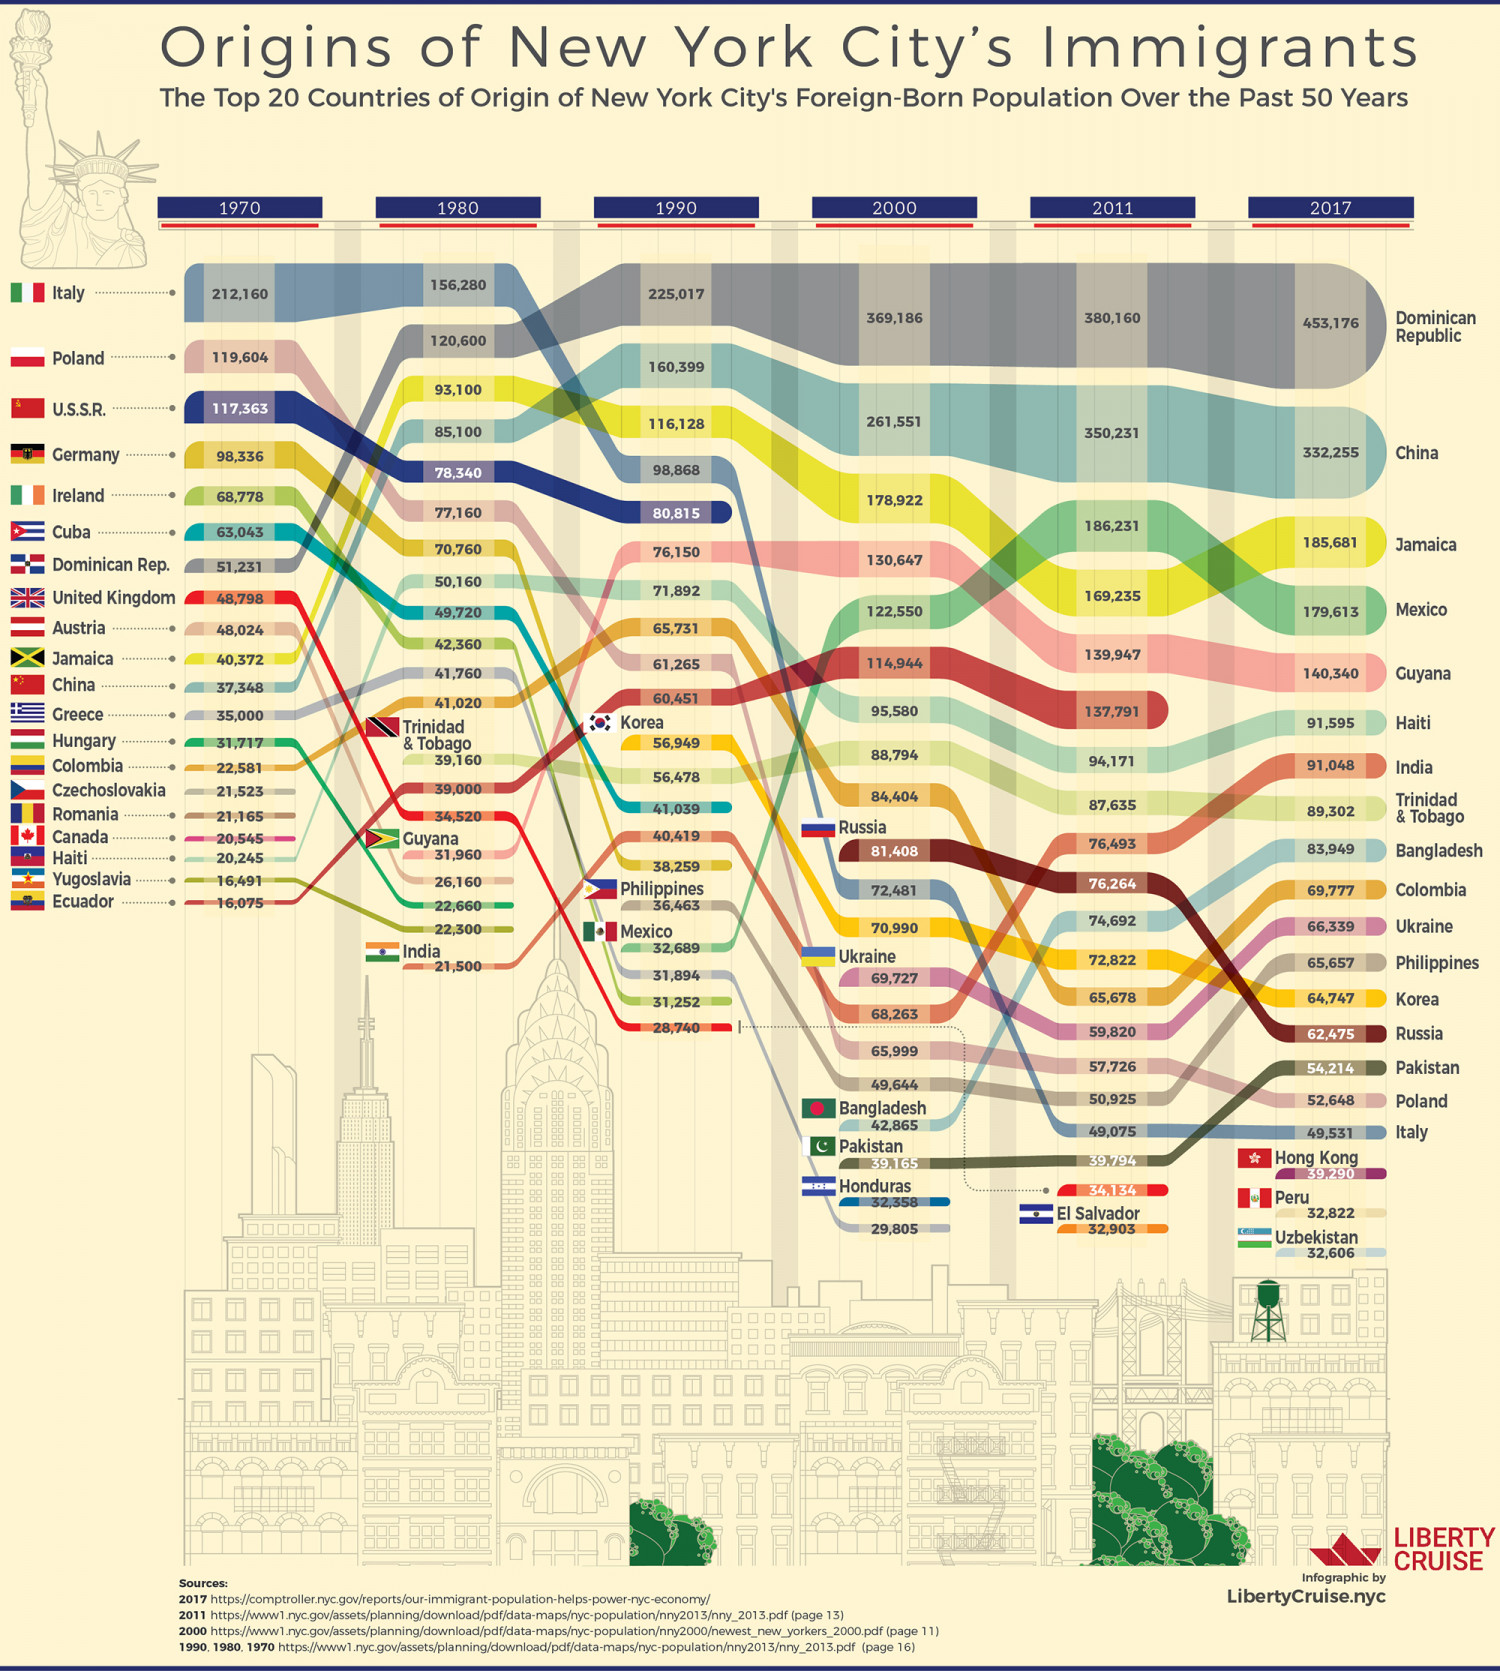 Origins of New York City's Immigrants  Infographic